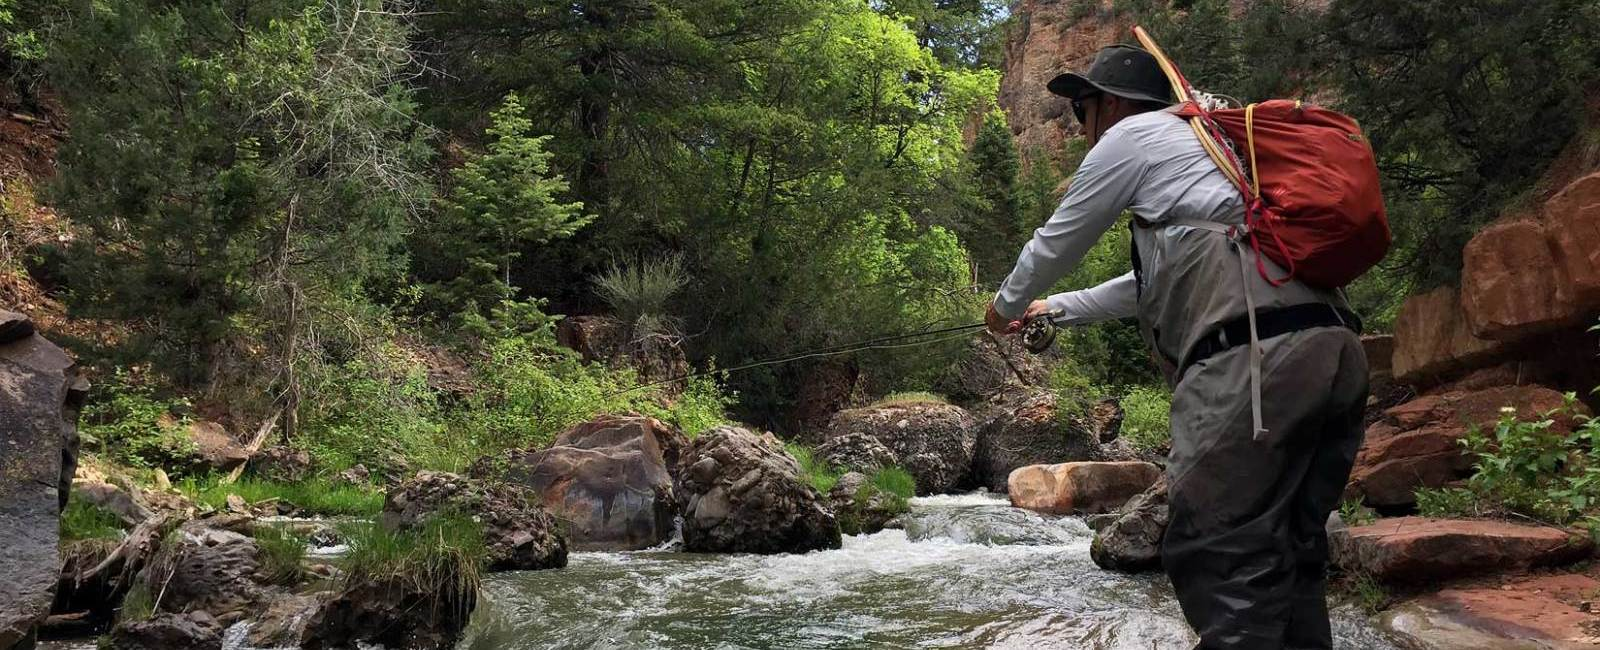 Every Skiers' Summer Dream. Catching Trophy Fish